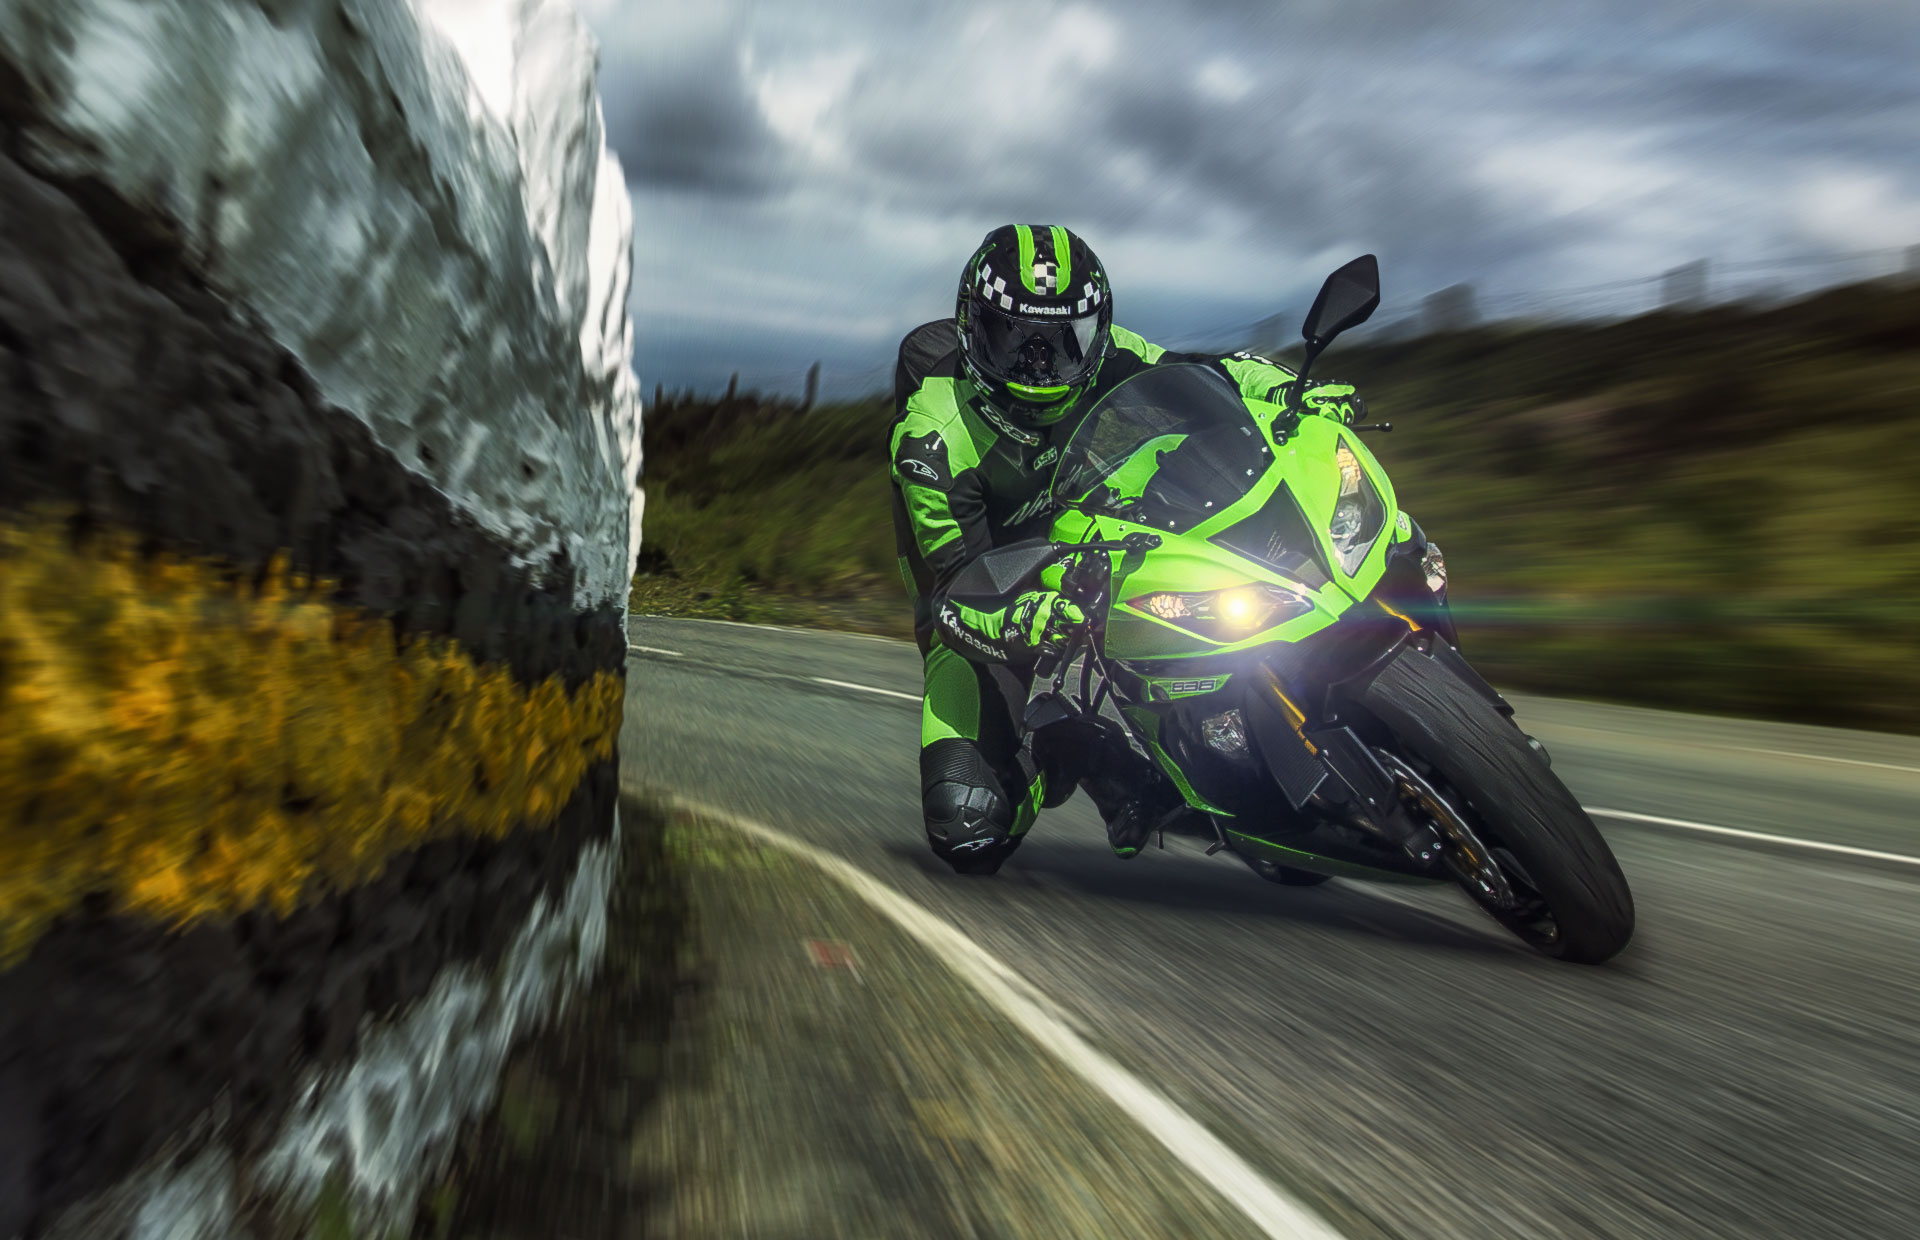 download kawasaki ninja zx6r 636 wallpaper [1920x1240] for 1920x1240